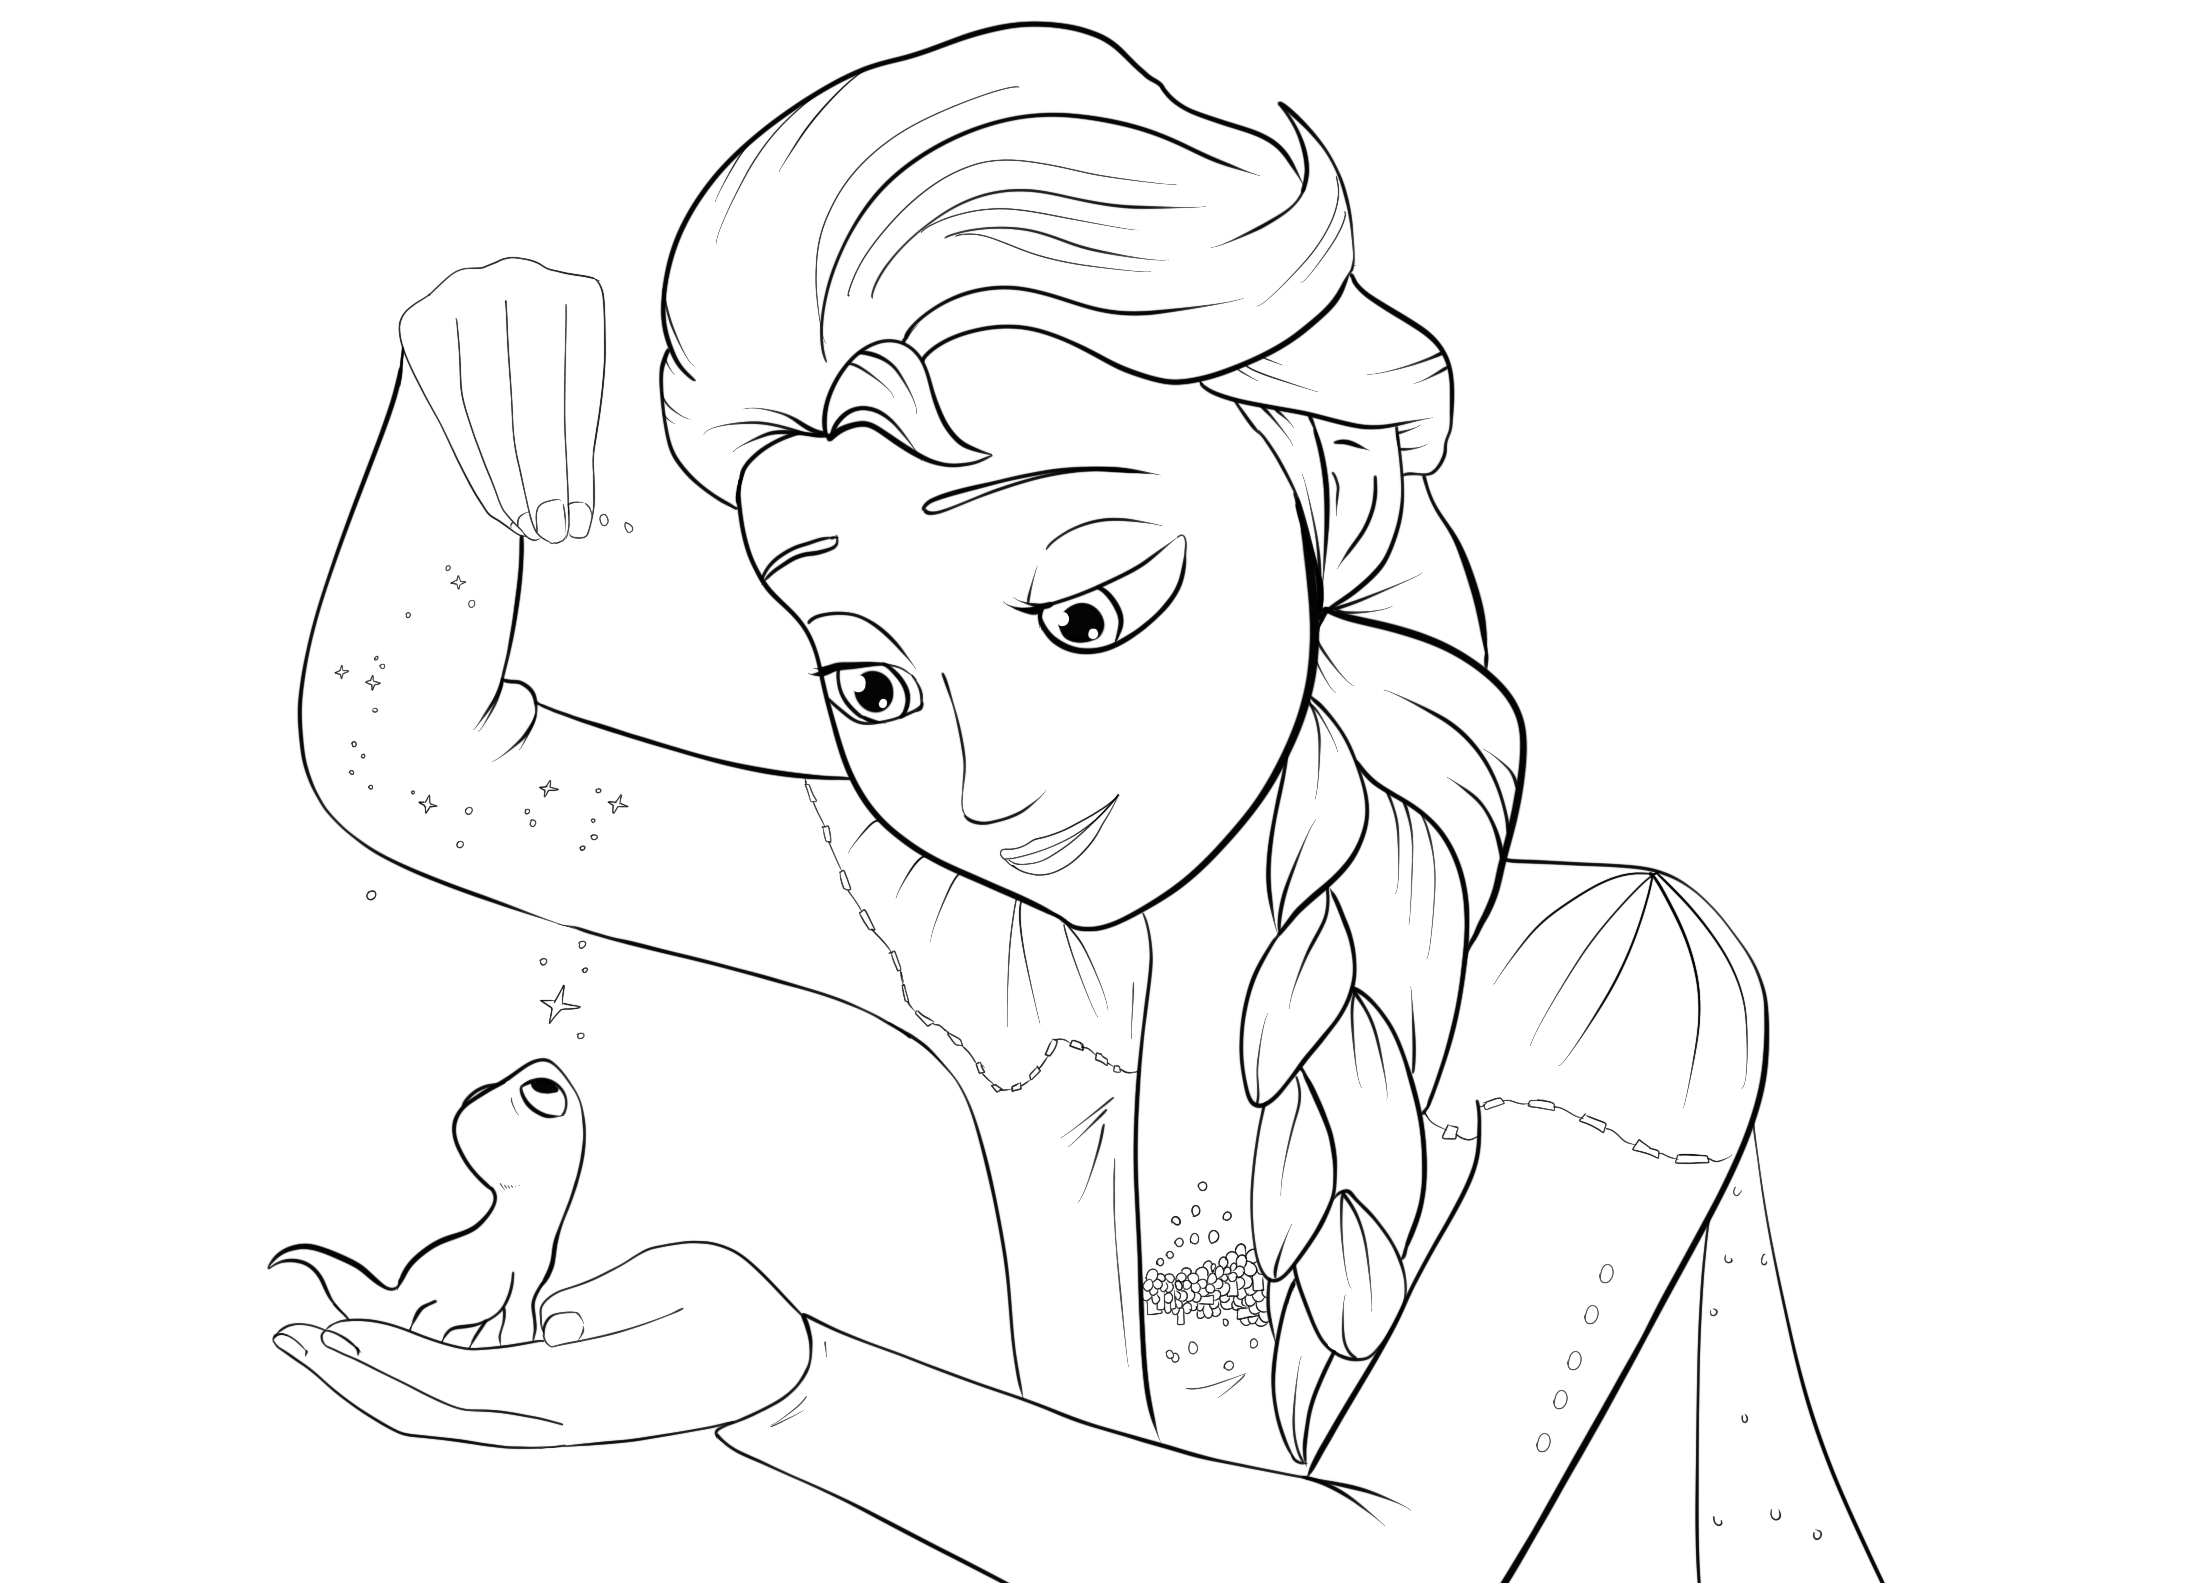 Frozen Coloring Pages Frozen Coloring Book Elsa Coloring Pages Frozen Coloring Frozen Coloring Pages